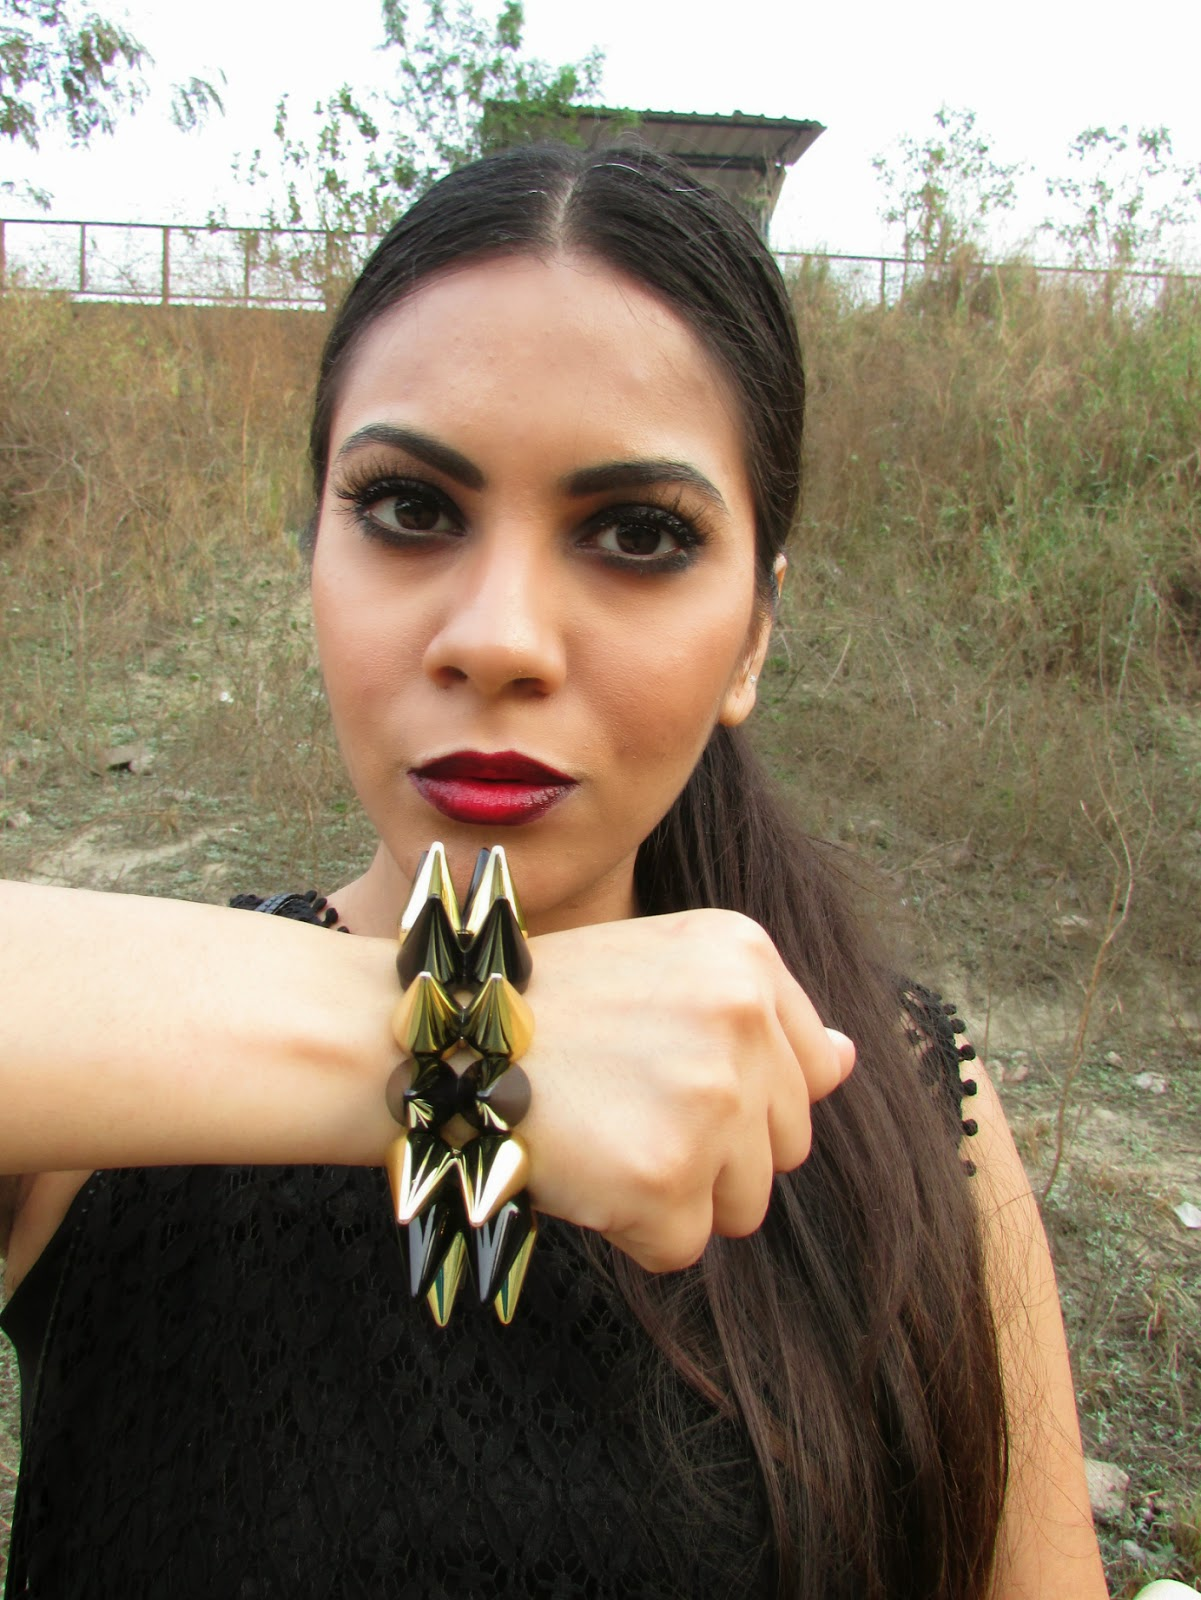 bracelet, ring, rocker chic outfit, rocker chic jewelry, spike bracelet, beaded ring, zahra jani accessories, smokey eyes, black spike bracelet, cheap jewelry online, statement necklace, stone statement necklace, multi colored necklace, zahara jani jewelry, cheap jewelry online, fashion, fashion jewelry india, cheap statement necklace online , how to style statement necklace, how to match jewelry,Statement necklace, necklace, statement necklaces, big necklace, heavy necklaces , gold necklace, silver necklace, silver statement necklace, gold statement necklace, studded statement necklace , studded necklace, stone studded necklace, stone necklace, stove studded statement necklace, stone statement necklace, stone studded gold statement necklace, stone studded silver statement necklace, black stone necklace, black stone studded statement necklace, black stone necklace, black stone statement necklace, neon statement necklace, neon stone statement necklace, black and silver necklace, black and gold necklace, blank and silver statement necklace, black and gold statement necklace, silver jewellery, gold jewellery, stove jewellery, stone studded jewellery, imitation jewellery, artificial jewellery, junk jewellery, cheap jewellery , zahrajani Statement necklace, zahrajani necklace, zahrajani statement necklaces,zahrajani big necklace, zahrajani heavy necklaces , zahrajani gold necklace, zahrajani silver necklace, zahrajani silver statement necklace,zahrajani gold statement necklace, zahrajani studded statement necklace , zahrajani studded necklace, zahrajani stone studded necklace, zahrajani stone necklace, zahrajani stove studded statement necklace, zahrajani stone statement necklace, zahrajani stone studded gold statement necklace, zahrajani stone studded silver statement necklace, zahrajani black stone necklace, zahrajani black stone studded statement necklace, zahrajani black stone necklace, zahrajani black stone statement necklace, zahrajani neon statement necklace, zahrajani neon stone statement necklace, zahrajani black and silver necklace, zahrajani black and gold necklace, zahrajani black  and silver statement necklace, zahrajani black and gold statement necklace, silver jewellery, zahrajani gold jewellery, zahrajani stove jewellery, zahrajani stone studded jewellery, zahrajani imitation jewellery, zahrajani artificial jewellery, zahrajani junk jewellery, vcheap jewellery ,Cheap Statement necklace, Cheap necklace, Cheap statement necklaces,Cheap big necklace, Cheap heavy necklaces , Cheap gold necklace, Cheap silver necklace, Cheap silver statement necklace,Cheap gold statement necklace, Cheap studded statement necklace , Cheap studded necklace, Cheap stone studded necklace, Cheap stone necklace, Cheap stove studded statement necklace, Cheap stone statement necklace, Cheap stone studded gold statement necklace, Cheap stone studded silver statement necklace, Cheap black stone necklace, Cheap black stone studded statement necklace, Cheap black stone necklace, Cheap black stone statement necklace, Cheap neon statement necklace, Cheap neon stone statement necklace, Cheap black and silver necklace, Cheap black and gold necklace, Cheap black  and silver statement necklace, Cheap black and gold statement necklace, silver jewellery, Cheap gold jewellery, Cheap stove jewellery, Cheap stone studded jewellery, Cheap imitation jewellery, Cheap artificial jewellery, Cheap junk jewellery, Cheap cheap jewellery ,Giveaway, giveaways,clothes giveaway, clothes giveaways, shoes giveaways, jewellery giveaway, jewellery giveaways, online clothes giveaway, online shoes giveaway, online jewellery giveaway, , clothes and shoes giveaway , clothes and jewellery giveaway, jewellery and shoes giveaway, online shoes and clothes giveaway,online jewellery and clothes giveaway, free clothes , free shoes, free jewellery, free clothes and shoes, free clothes and jewellery, free shoes and jewellery giveaway,Black sunglasses, black sunnies, mirrored sunnies, mirrored sunglasses, sunglasses, sunnies, how to wear sunnies, how to wear sunglasses, how to wear mirrored sunglasses, how to wear mirrored sunnies, how to wear sunglasses in winter, how to wear sunglasses at night, how to wear sunnies at night, how to wear sunnies in winter, best sunglasses, best sunnies, best mirrored sunnies, best mirrored sunglasses, best sunglasses online, best sunnies online, best mirrored sunnies online, best mirrored sunglasses online, cheap mirrored sunglasses, cheap mirrored sunnies, cheap mirrored sunglasses online, cheap mirrored sunnies online, cost of mirrored sunnies, cost of mirrored sunglasses, cost of mirrored sunglasses online, cost of mirrored sunnies online, black sunglasses by zahrajani , black sunnies by zahrajani , zahrajani sunglasses, cost of sunglasses by zahrajani , cheap sunglasses at zahrajani , cheap sunnies at zahrajani , cost of sunglasses of zahrajani , cost of sunnies at zahrajani , mirrored sunnies at Choies, mirrored sunglasses at zahrajani , cheap mirrored sunglasses at zahrajani , cheap mirrored sunnies at choirs, cost of mirrored sunglasses at Choies, cost of mirrored sunnies at zahrajani ,Chinese jewellery ,Chinese jewellery online,Chinese heels online,Chinese electronics online,Chinese garments,Chinese garments online,Chinese products,Chinese products online,Chinese accessories online,Chinese inline clothing shop,Chinese online shop,Chinese online shoes shop,Chinese online jewellery shop,Chinese cheap clothes online,Chinese  clothes shop online, korean online shop,korean garments,korean makeup,korean makeup shop,korean makeup online,korean online clothes,korean online shop,korean clothes shop online,korean dresses online,korean dresses online,cheap Chinese clothes,cheap korean clothes,cheap Chinese makeup,cheap korean makeup,cheap korean shopping ,cheap Chinese shopping,cheap Chinese online shopping,cheap korean online shopping,cheap Chinese shopping website,cheap korean shopping website, cheap online shopping,online shopping,how to shop online ,how to shop clothes online,how to shop shoes online,how to shop jewellery online,how to shop mens clothes online, mens shopping online,boys shopping online,boys jewellery online,mens online shopping,mens online shopping website,best Chinese shopping website, Chinese online shopping website for men,best online shopping website for women,best korean online shopping,best korean online shopping website,korean fashion,korean fashion for women,korean fashion for men,korean fashion for girls,korean fashion for boys,wholesale chinese shopping website,wholesale shopping website,chinese wholesale shopping online,chinese wholesale shopping, chinese online shopping on wholesale prices, clothes on wholesale prices,cholthes on wholesake prices,clothes online on wholesales prices,online shopping, online clothes shopping, online jewelry shopping,how to shop online, how to shop clothes online, how to shop earrings online, how to shop,skirts online, dresses online,jeans online, shorts online, tops online, blouses online,shop tops online, shop blouses online, shop skirts online, shop dresses online, shop botoms online, shop summer dresses online, shop bracelets online, shop earrings online, shop necklace online, shop rings online, shop highy low skirts online, shop sexy dresses onle, men's clothes online, men's shirts online,men's jeans online, mens.s jackets online, mens sweaters online, mens clothes, winter coats online, sweaters online, cardigens online,beauty , fashion,beauty and fashion,beauty blog, fashion blog , indian beauty blog,indian fashion blog, beauty and fashion blog, indian beauty and fashion blog, indian bloggers, indian beauty bloggers, indian fashion bloggers,indian bloggers online, top 10 indian bloggers, top indian bloggers,top 10 fashion bloggers, indian bloggers on blogspot,home remedies, how to,Winter,fall, fall abd winter, winter clothes , fall clothes, fall and winter clothes, fall jacket, winter jacket, fall and winter jacket, fall blazer, winter blazer, fall and winter blazer, fall coat , winter coat, falland winter coat, fall coverup, winter coverup, fall and winter coverup, outerwear, coat , jacket, blazer, fall outerwear, winter outerwear, fall and winter outerwear, woolen clothes, wollen coat, woolen blazer, woolen jacket, woolen outerwear, warm outerwear, warm jacket, warm coat, warm blazer, warm sweater, coat , white coat, white blazer, white coat, white woolen blazer,choies online shopping review,choies.com review,choies online clothing store,choies online chinese store,choies online shopping,choies site review,choies.com site review, choies Chines fashion, choies , choies com, choies clothing, choies dresses, choies shoes, choies accessories,choiesmen cloths ,choies makeup, choies helth products,choies Chinese online shopping, choies Chinese store, choies online chinese shopping, choies hinese shopping online,choies, choies dresses, zahrajani clothes, choies garments, choies clothes, choies skirts, choies pants, choies tops, choies cardigans, choies leggings, choies fashion , choies clothes fashion, choies footwear, choies fashion footwear, choies jewellery, choies fashion jewellery, choies rings, choies necklace, choies bracelets, choies earings,Autumn, fashion,choies